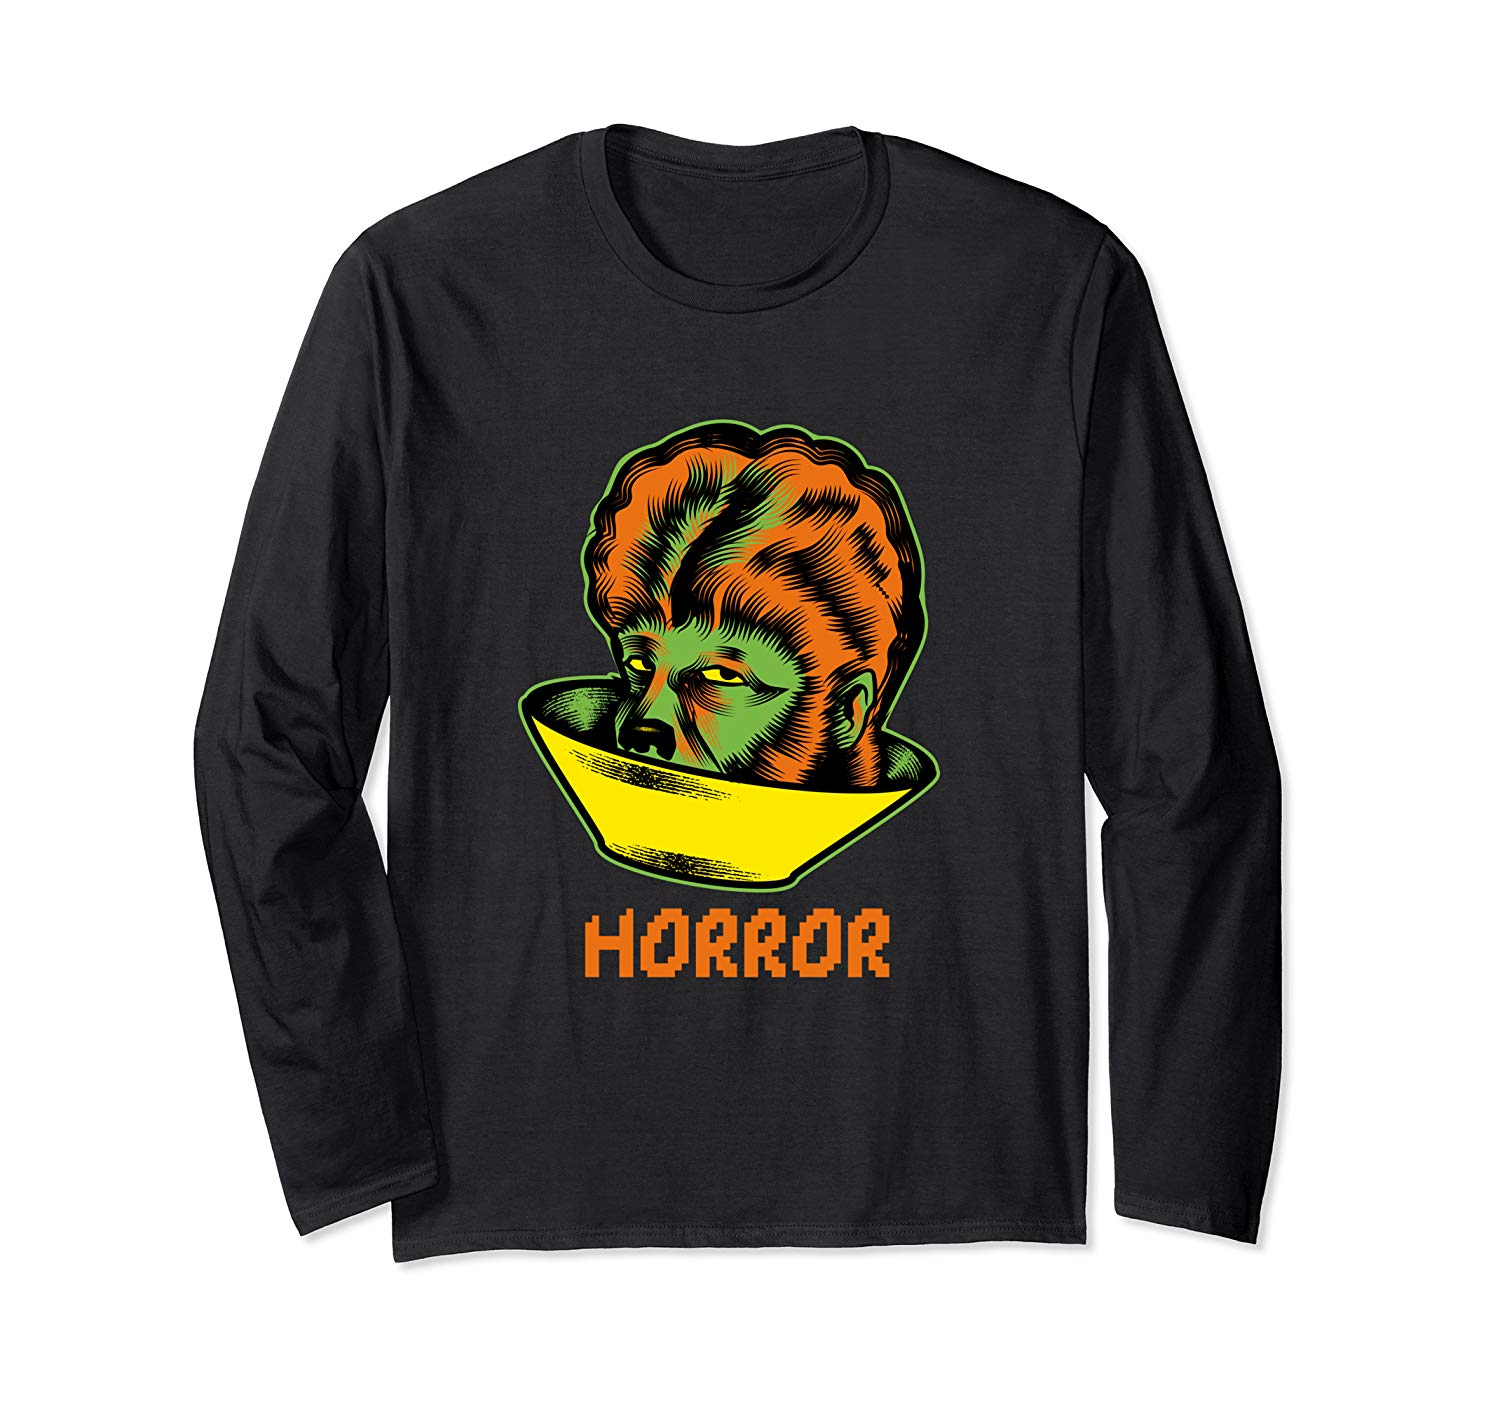 Halloween Shirts Funny Halloween Graphic Shirts Scary Zombie T Shirt